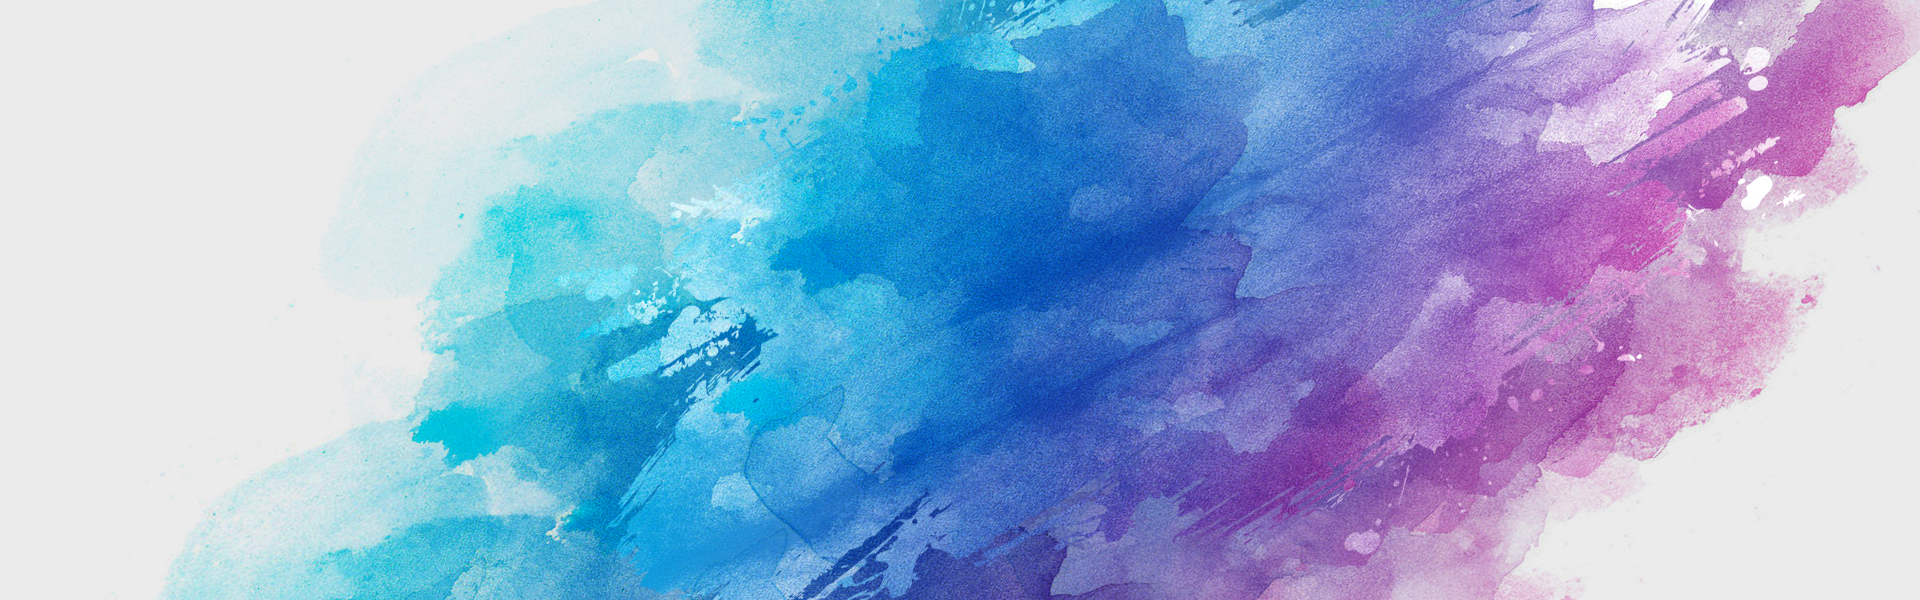 Editing Background Banner: Background Color, Web, Ink, Watercolor Background Image